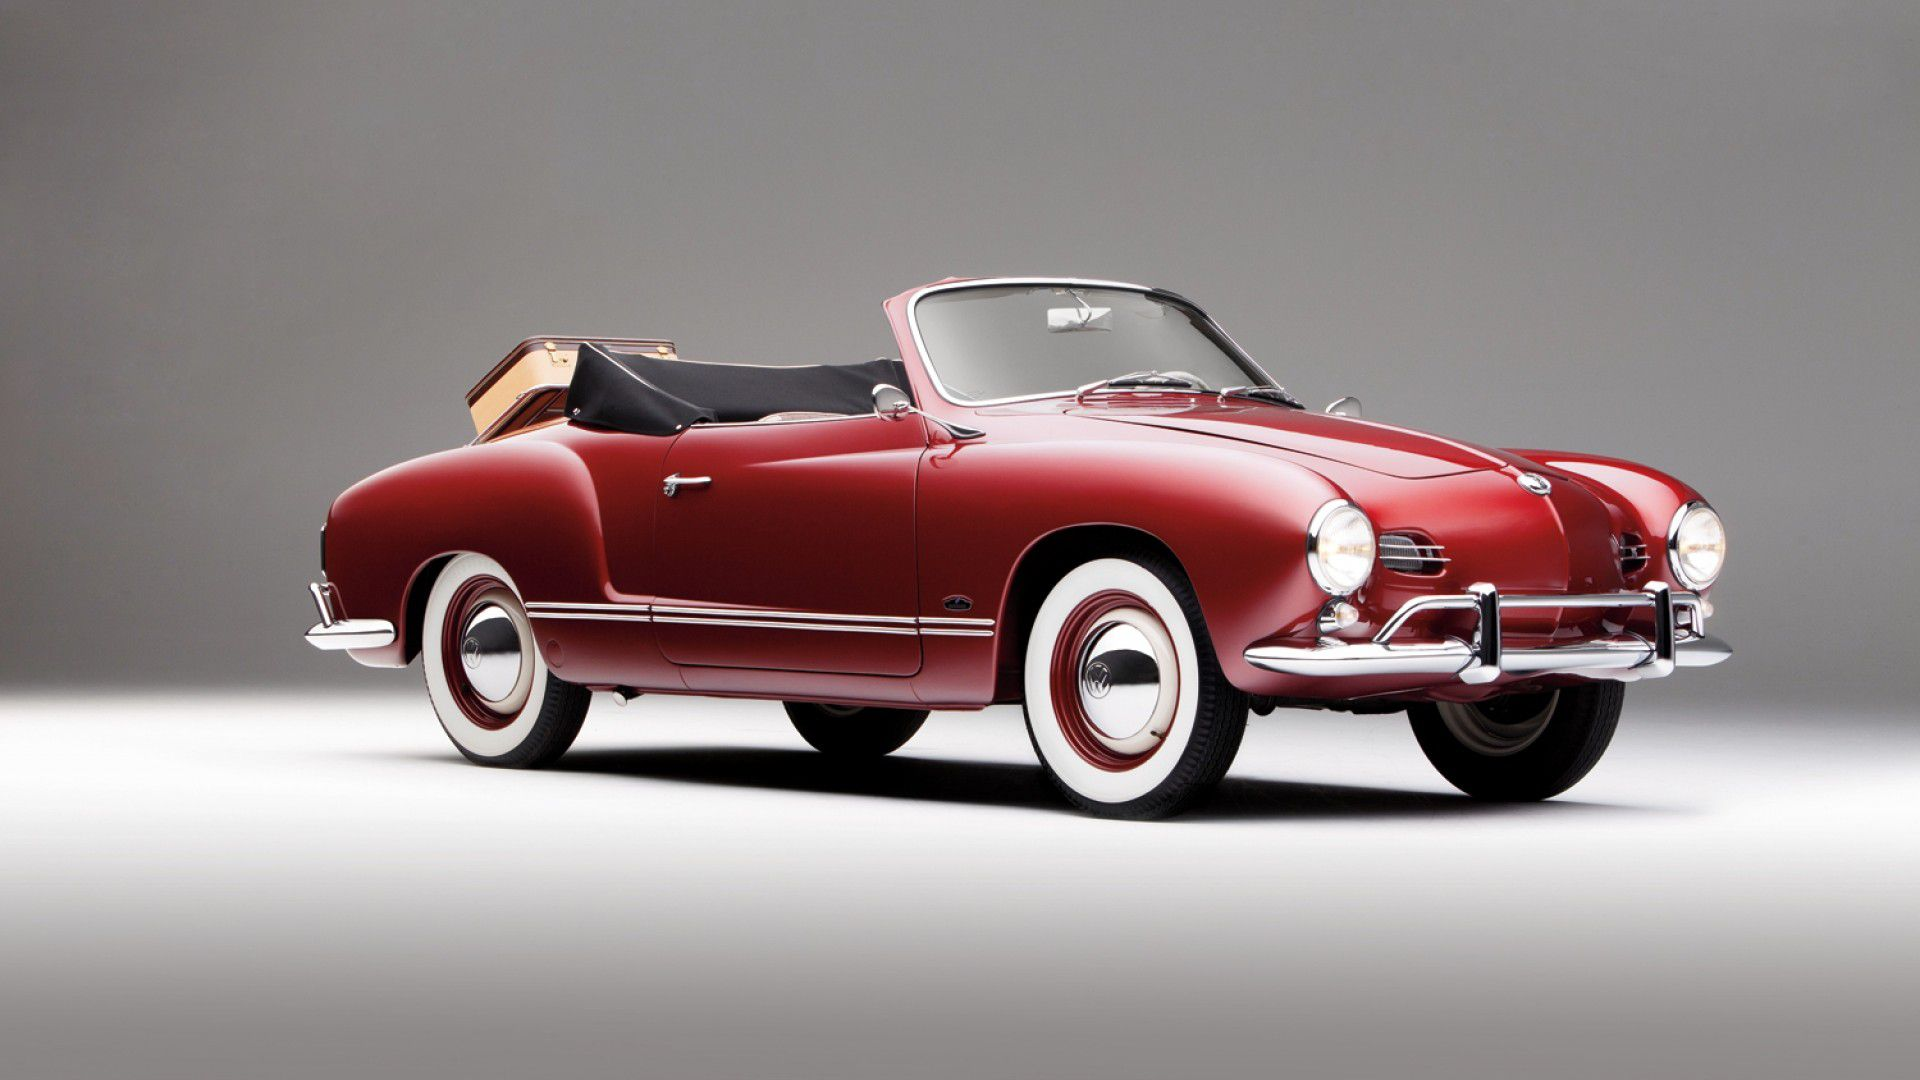 Italian Design Vw Volkswagen Karmann Ghia Definitive List Cars